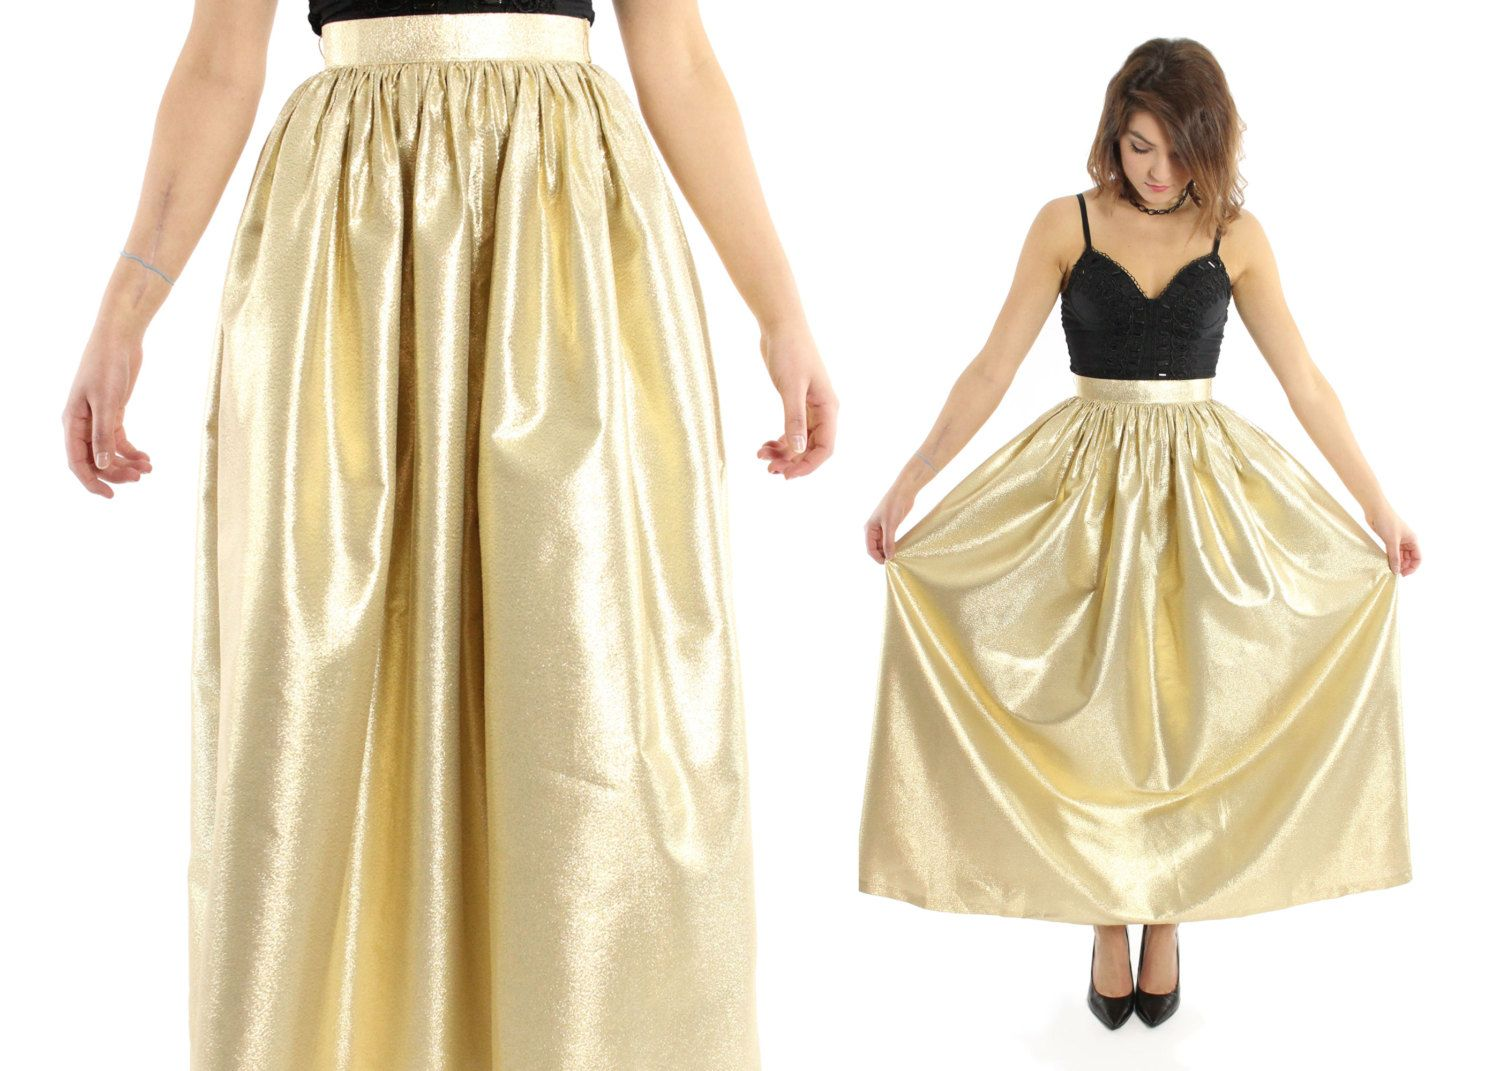 $78, Vintage 70s Maxi Skirt ALBERT CAPRARO Gold Lurex Metallic Full High Waisted 1970s XS Small by ScarletFury on Etsy